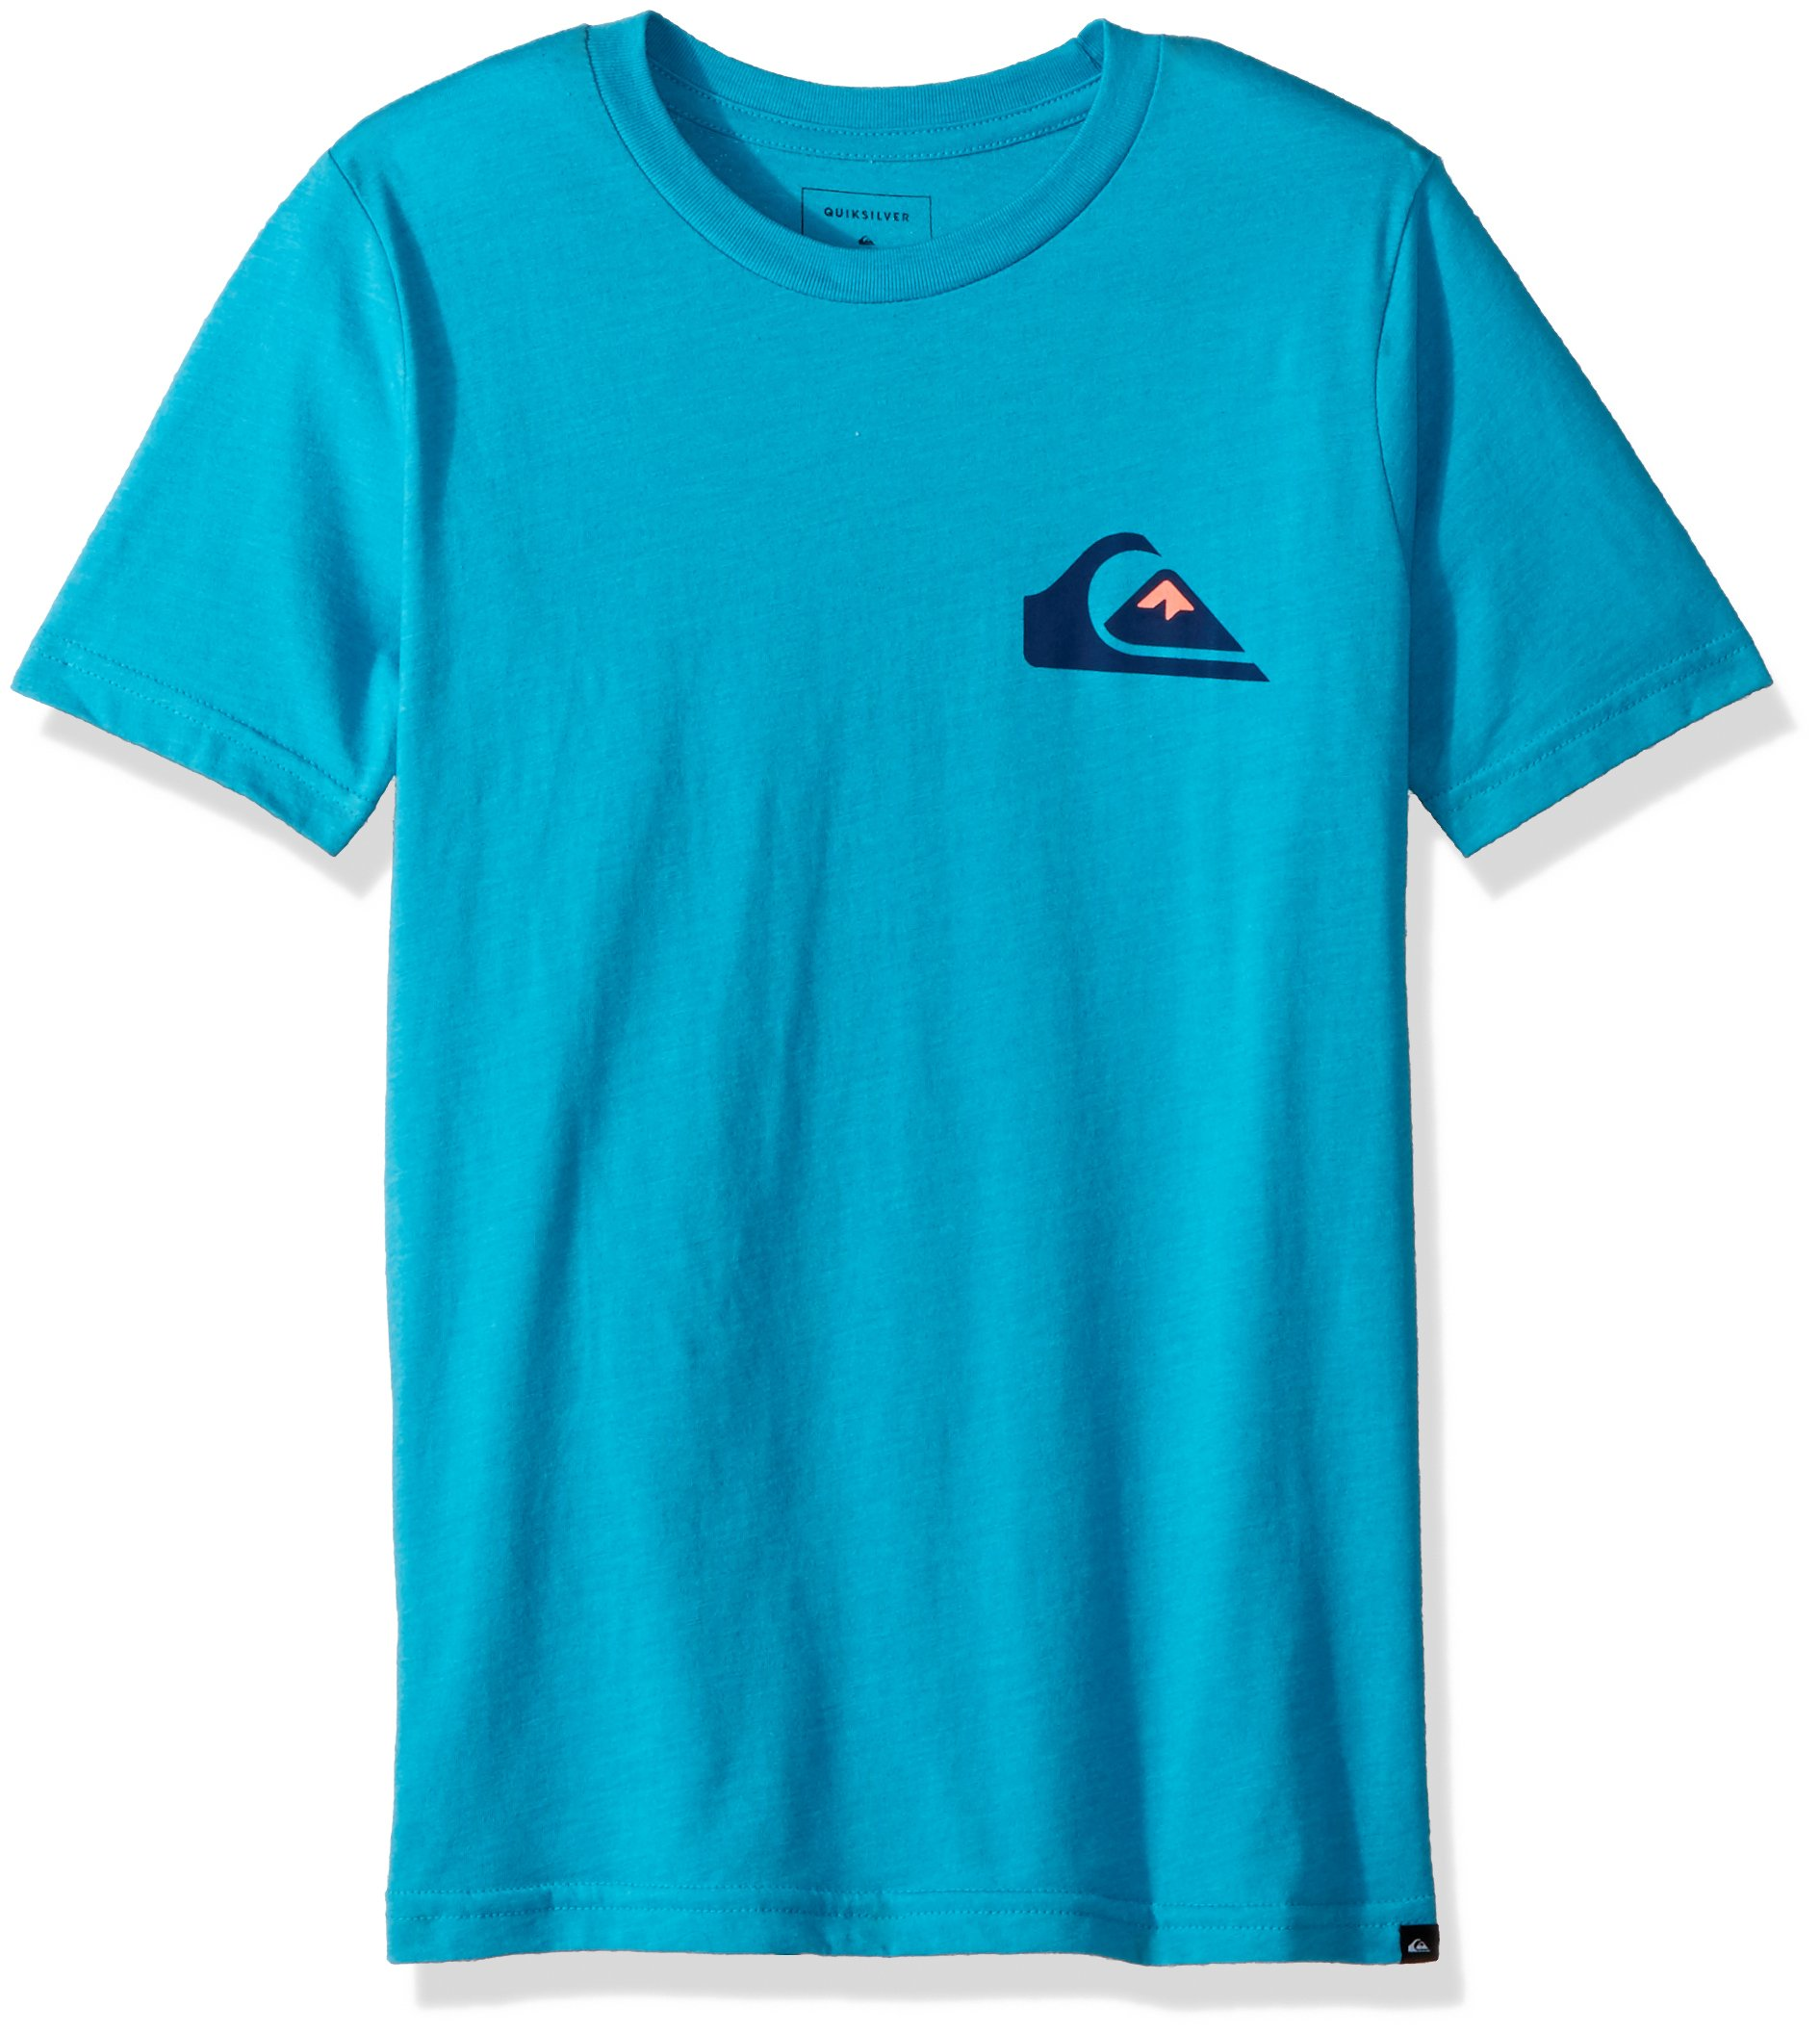 Quiksilver Big Boys' Vice Versa Youth Tee Shirt, Typhoon Heather, M/12 by Quiksilver (Image #1)